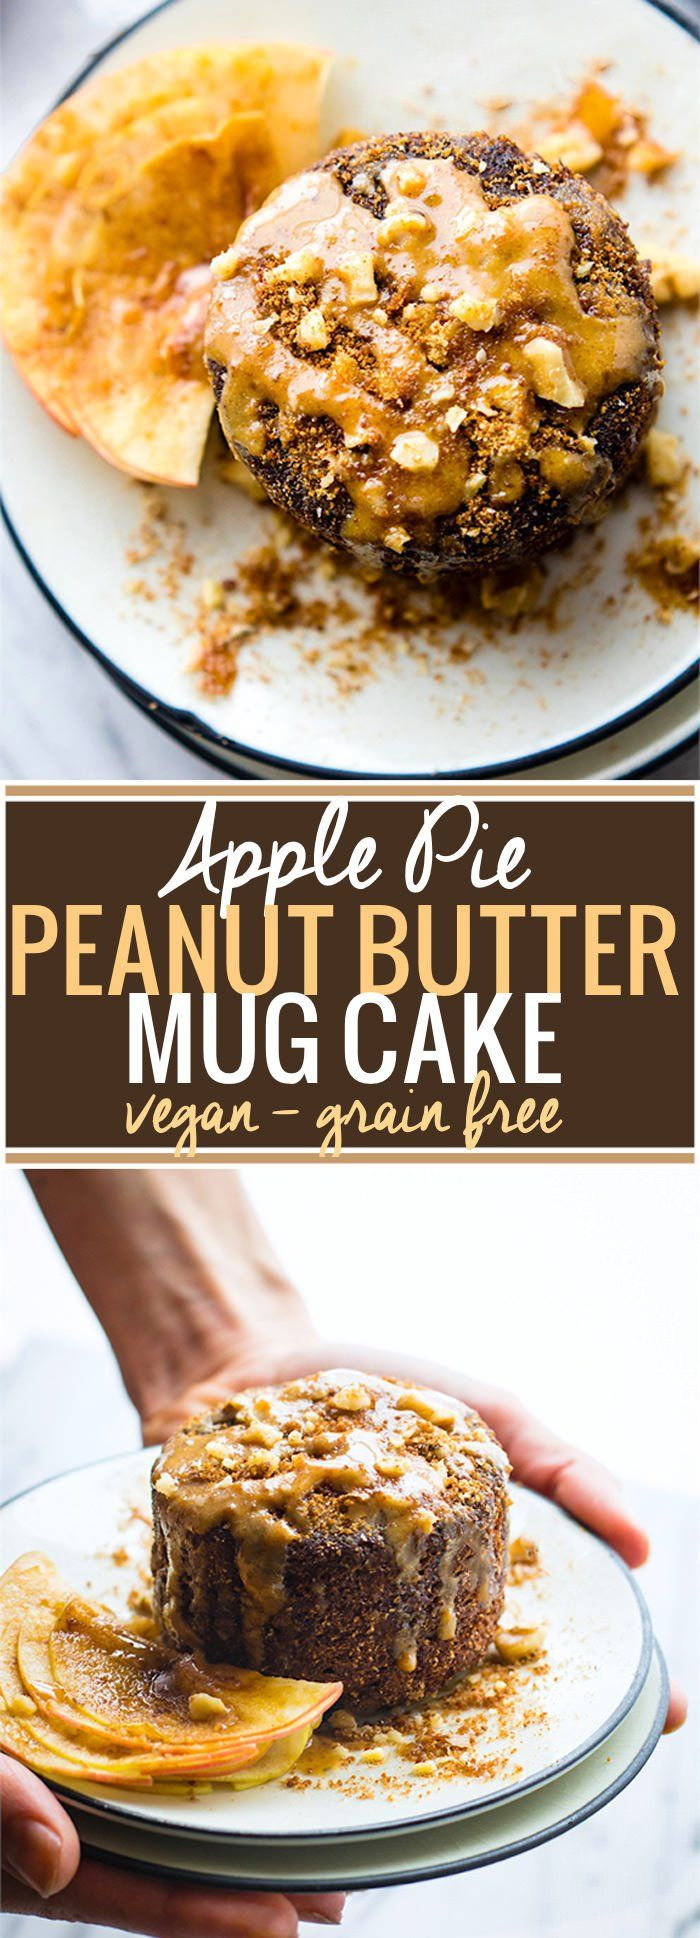 Need a quick healthy Breakfast recipe? Try this deliciously tasty Vegan Apple Pie Peanut Butter Mug Cake! A vegan mug cake that taste like dessert! Grain free, gluten free, kid friendly, and ready in less than 2 minutes. @cottercrunch